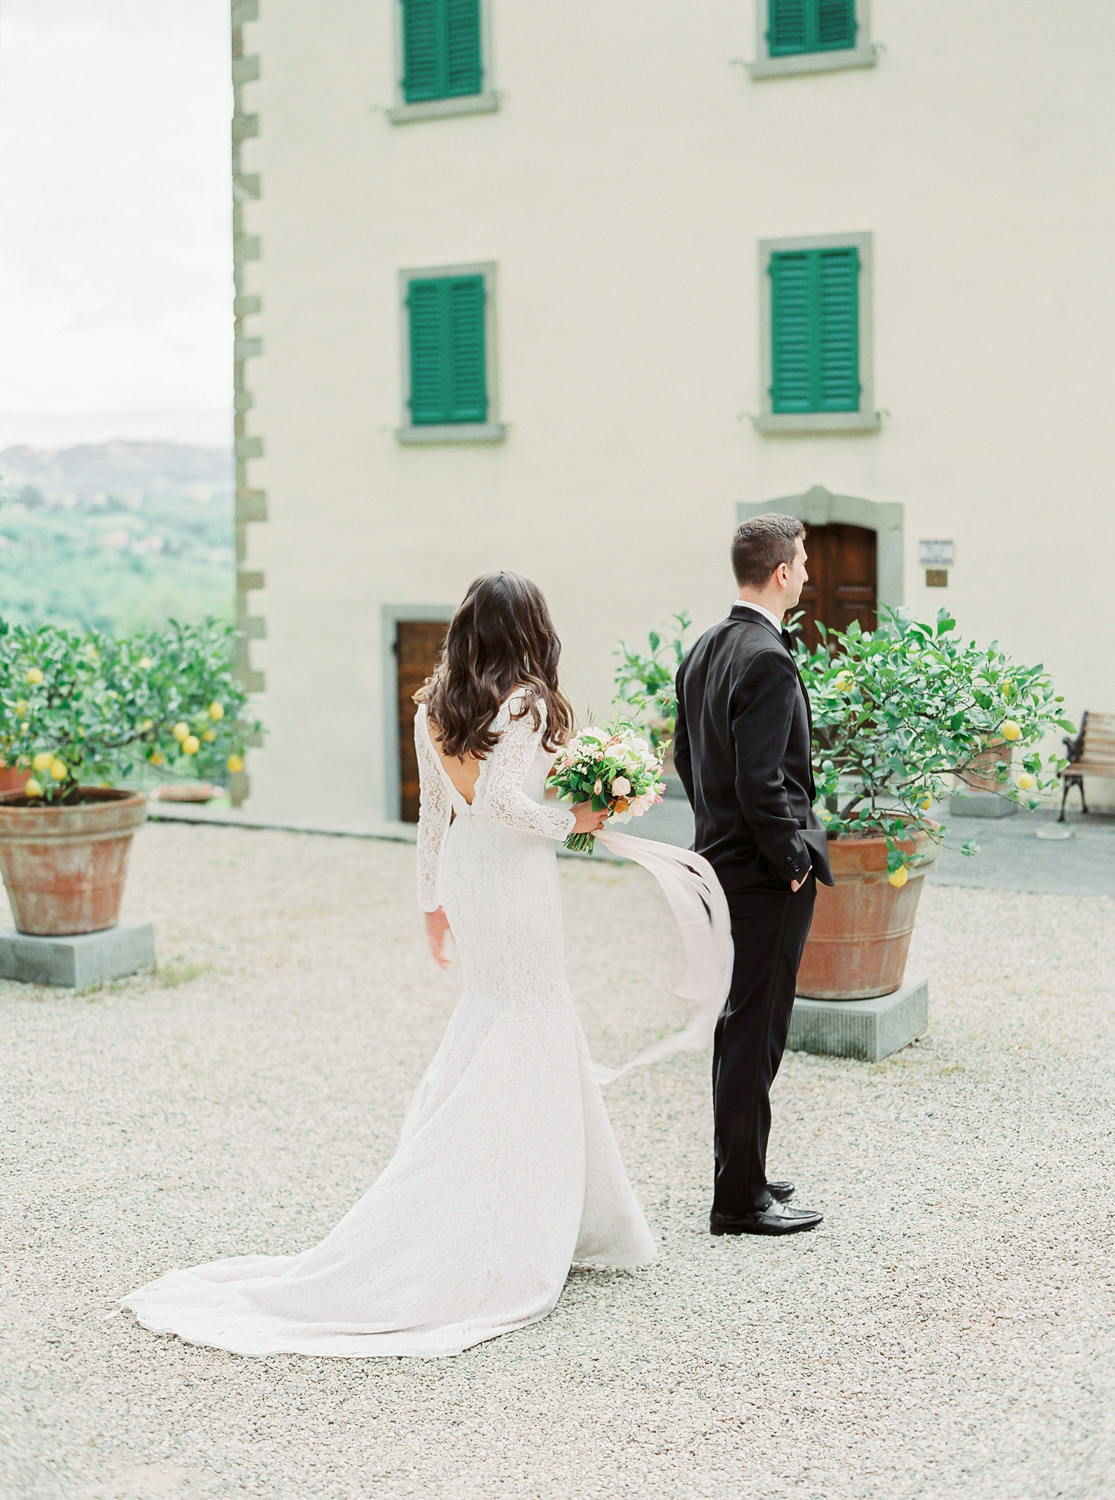 masha golub photography 9 1 - LOVE IN TUSCANY